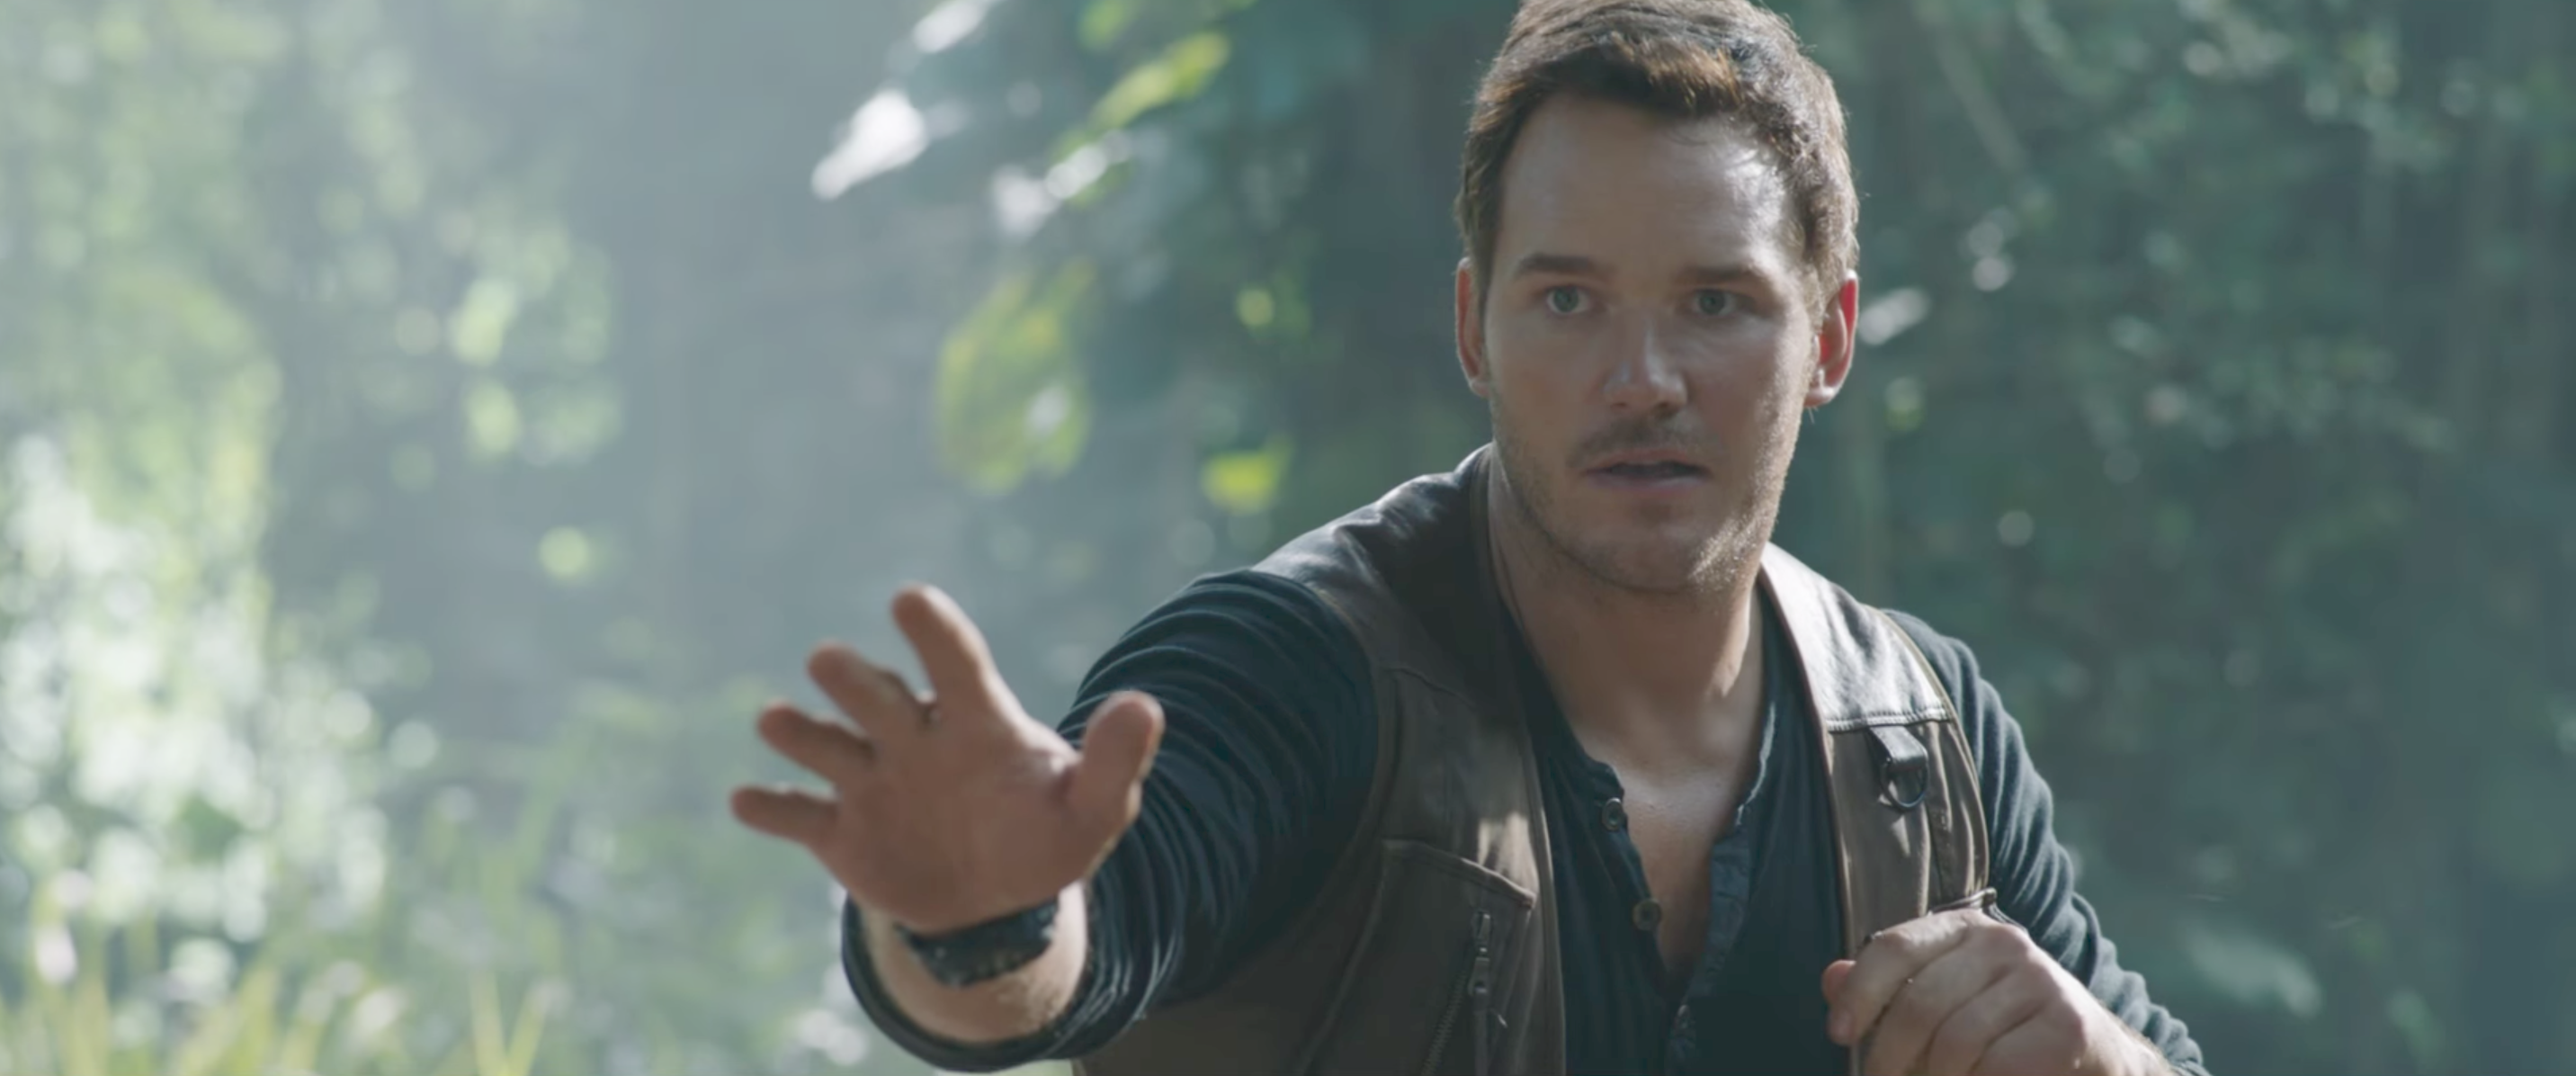 Jurassic World: Fallen Kingdom - The cast, plot and latest spoilers